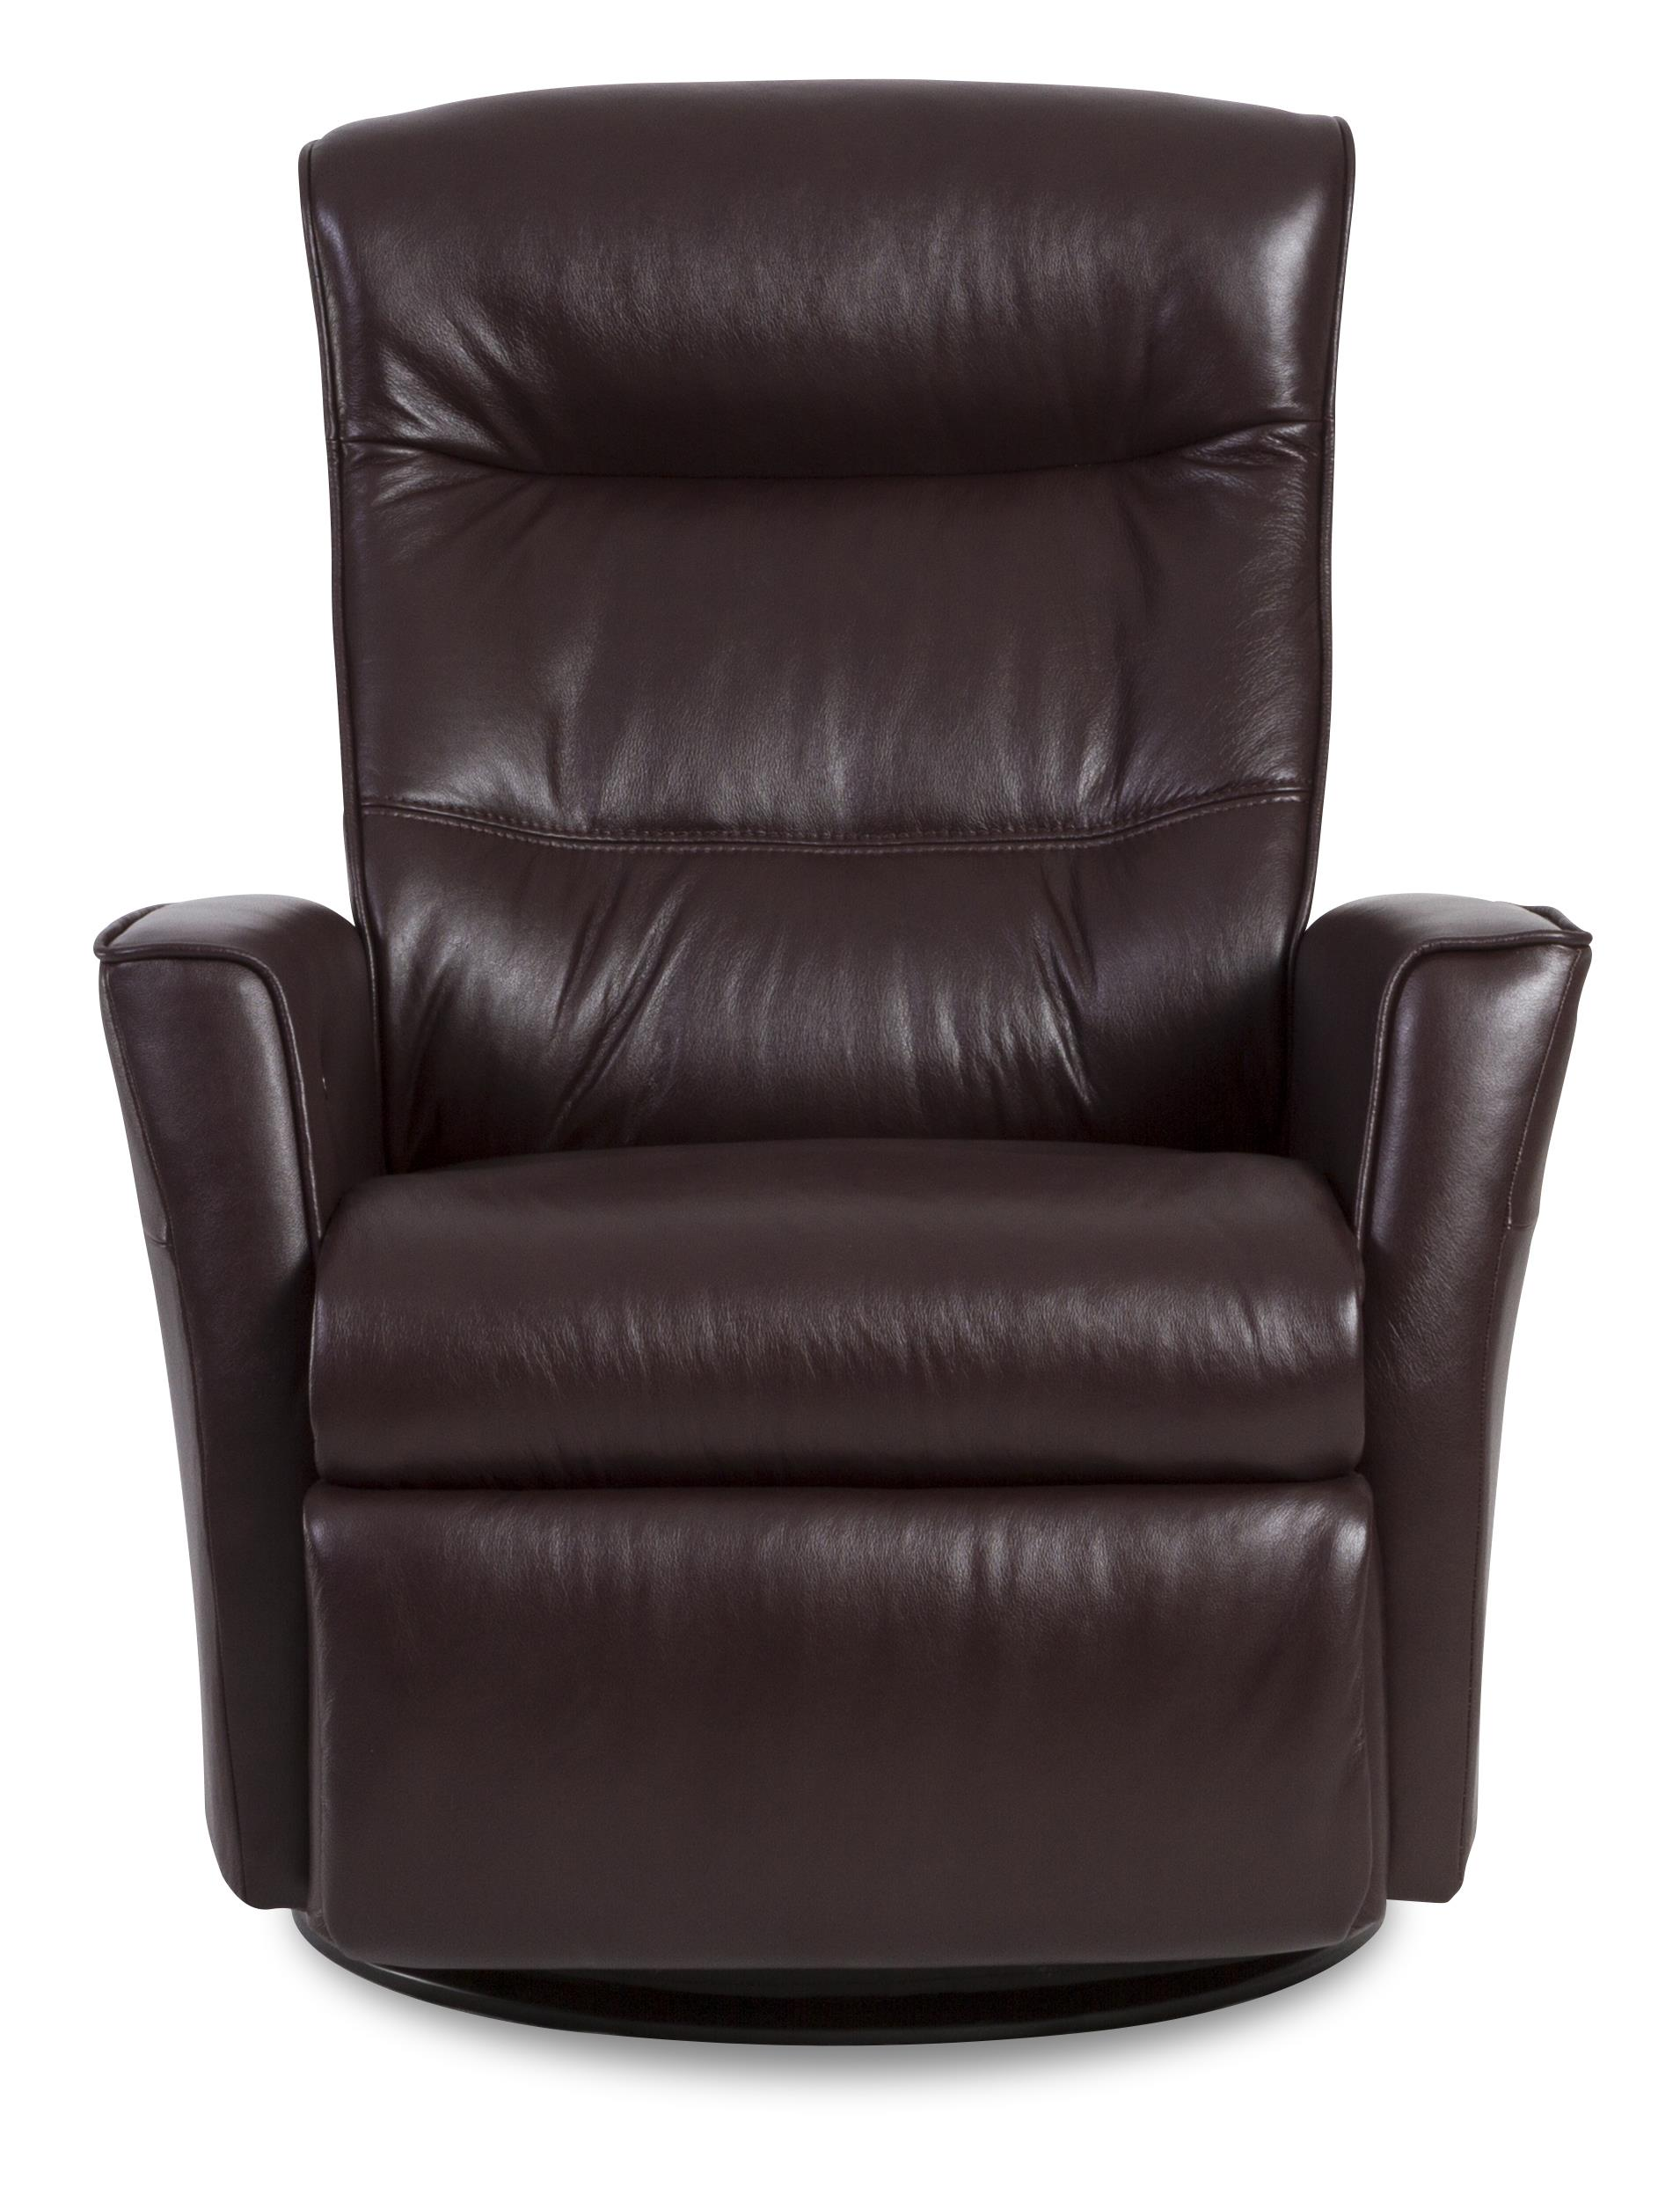 Crown Standard Relaxer Recliner by IMG Norway at Wilson's Furniture